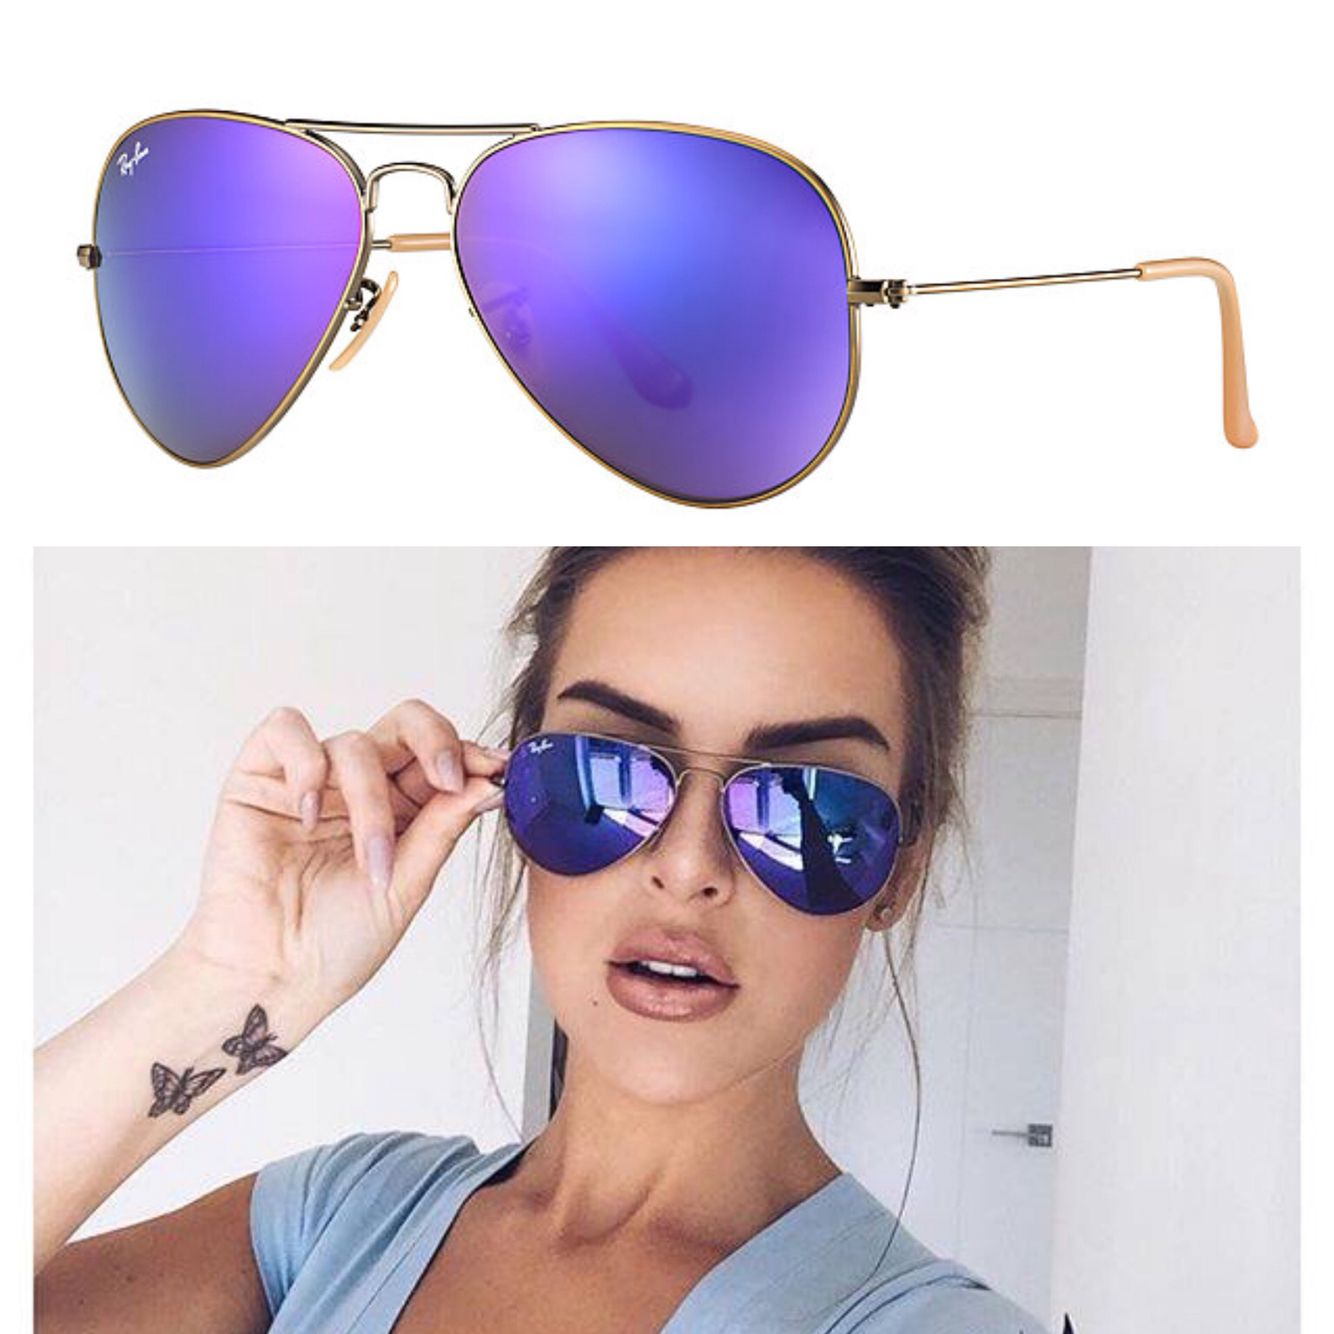 f8537c60fe8d Ray-Ban Aviator Flash - Purple ✓ https   tmblr.co